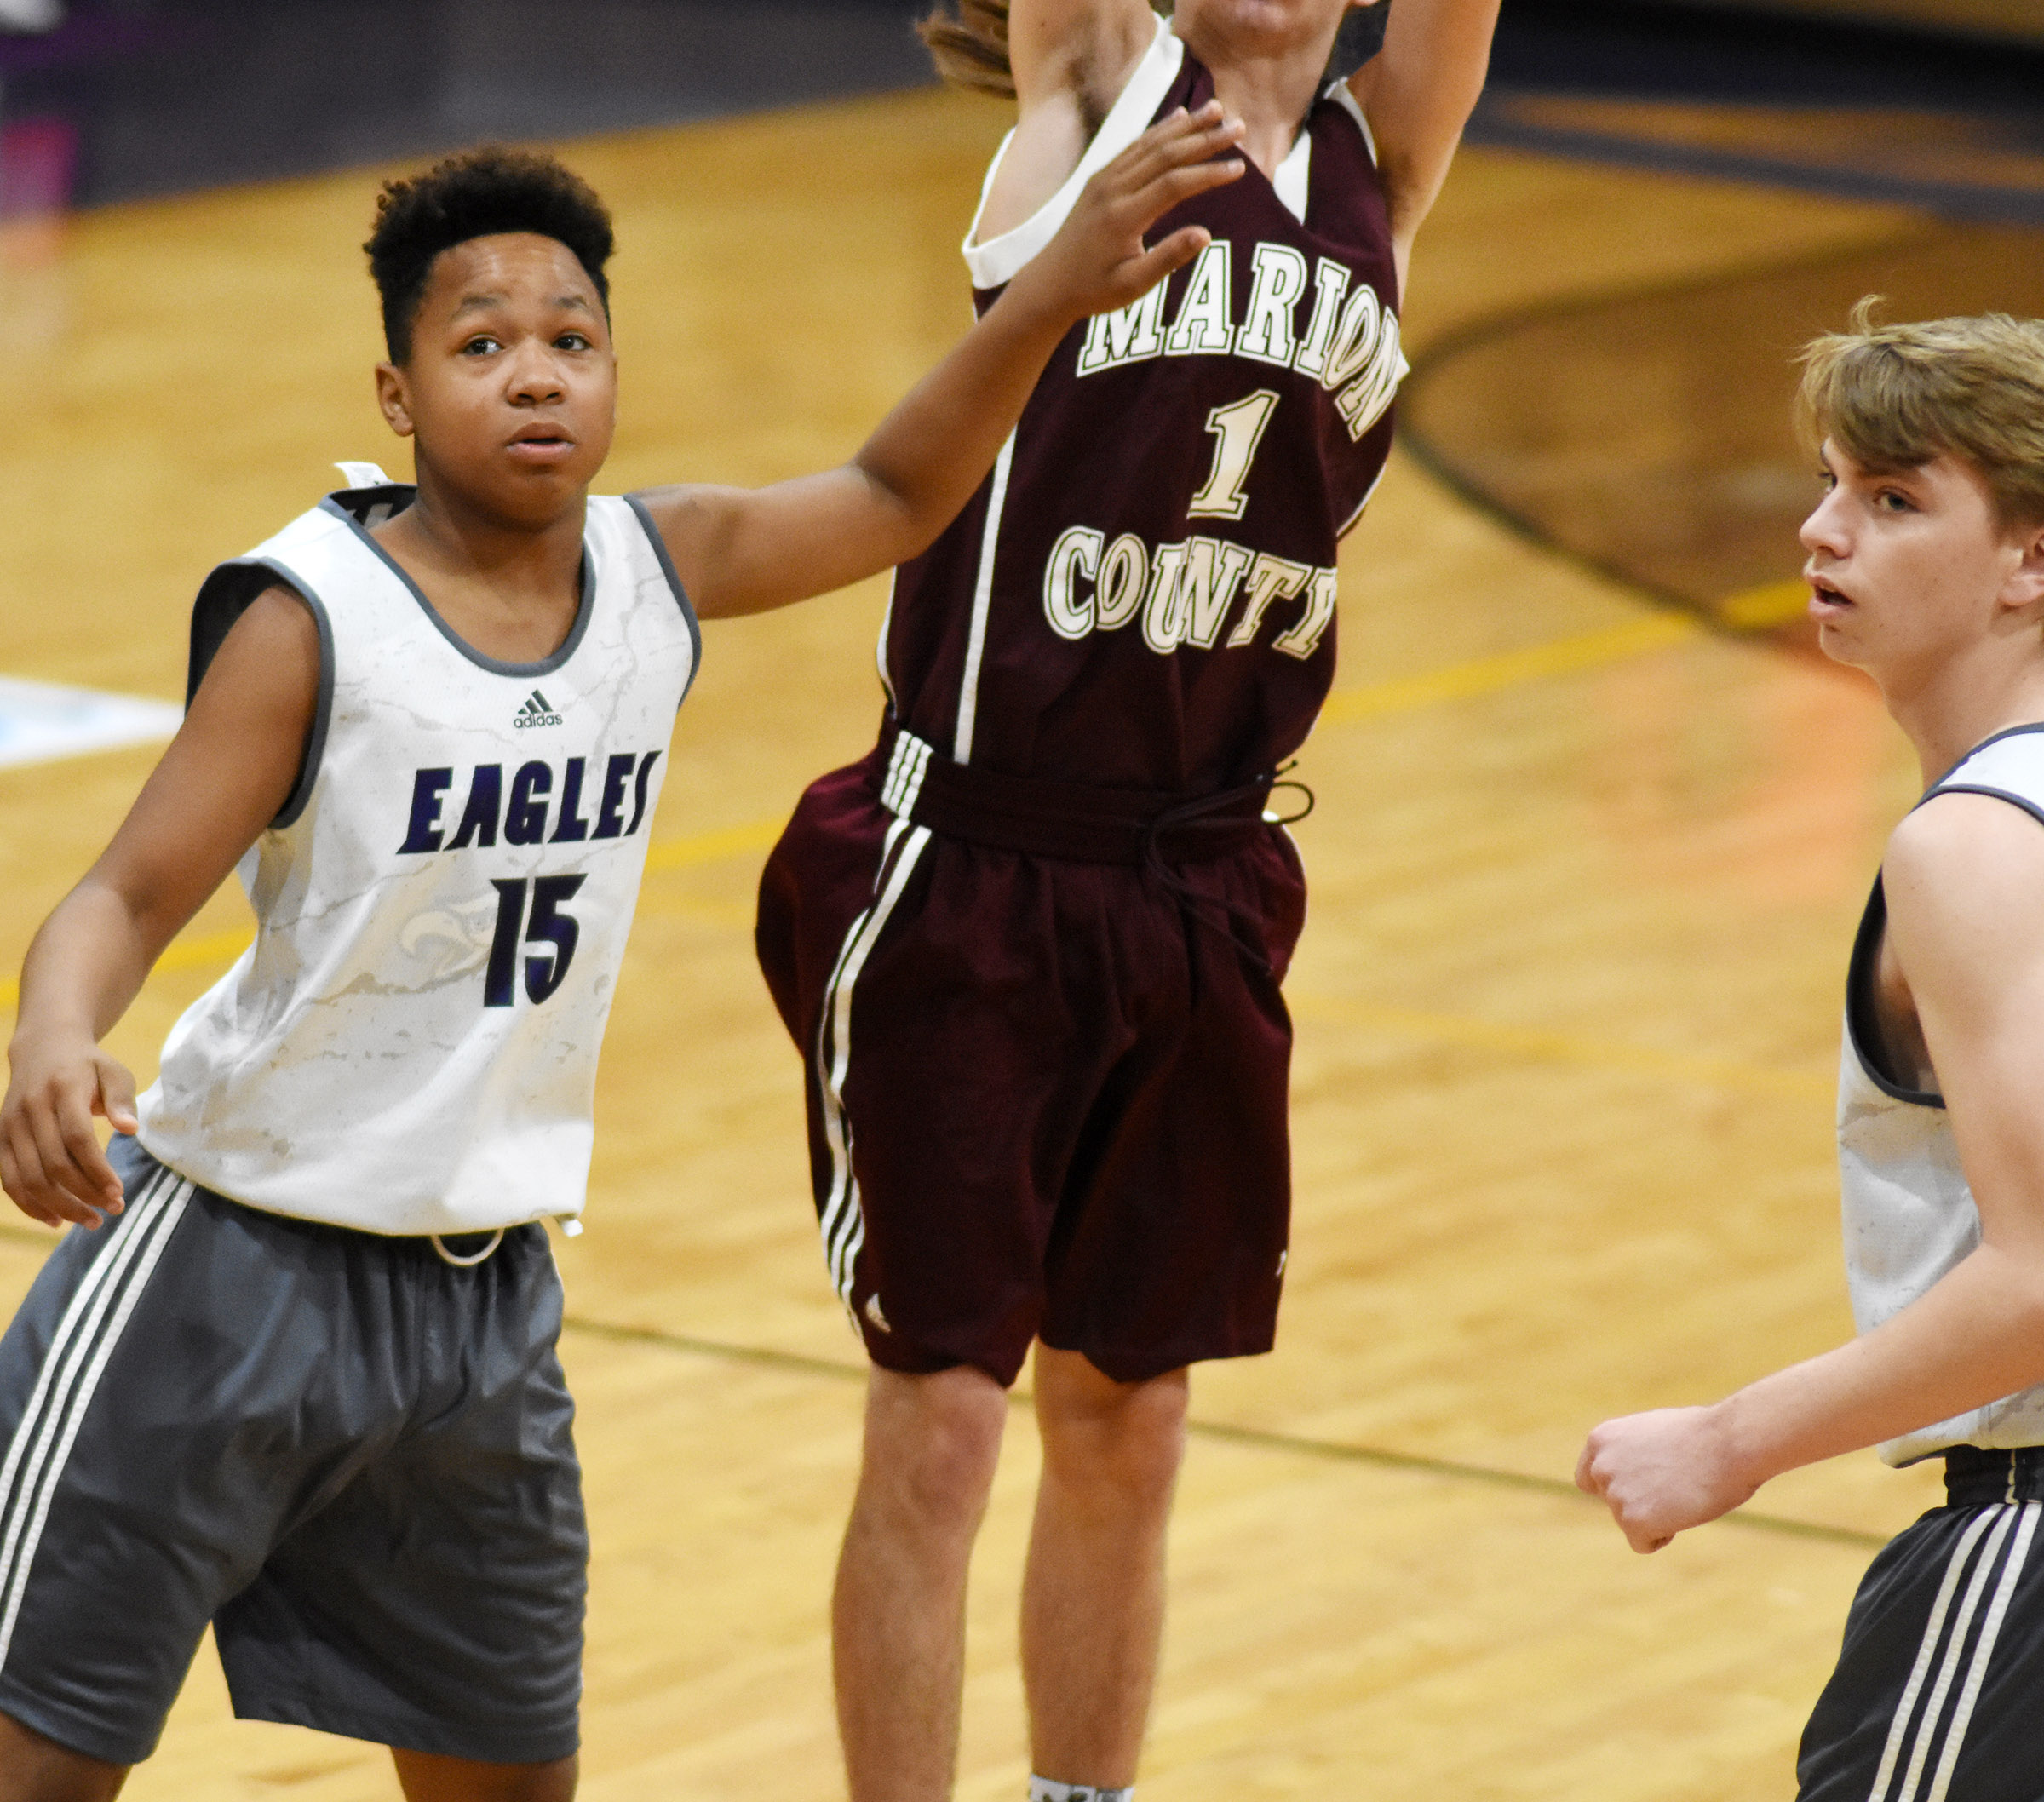 Campbellsville Middle School seventh-grader Deondre Weathers blocks a shot.